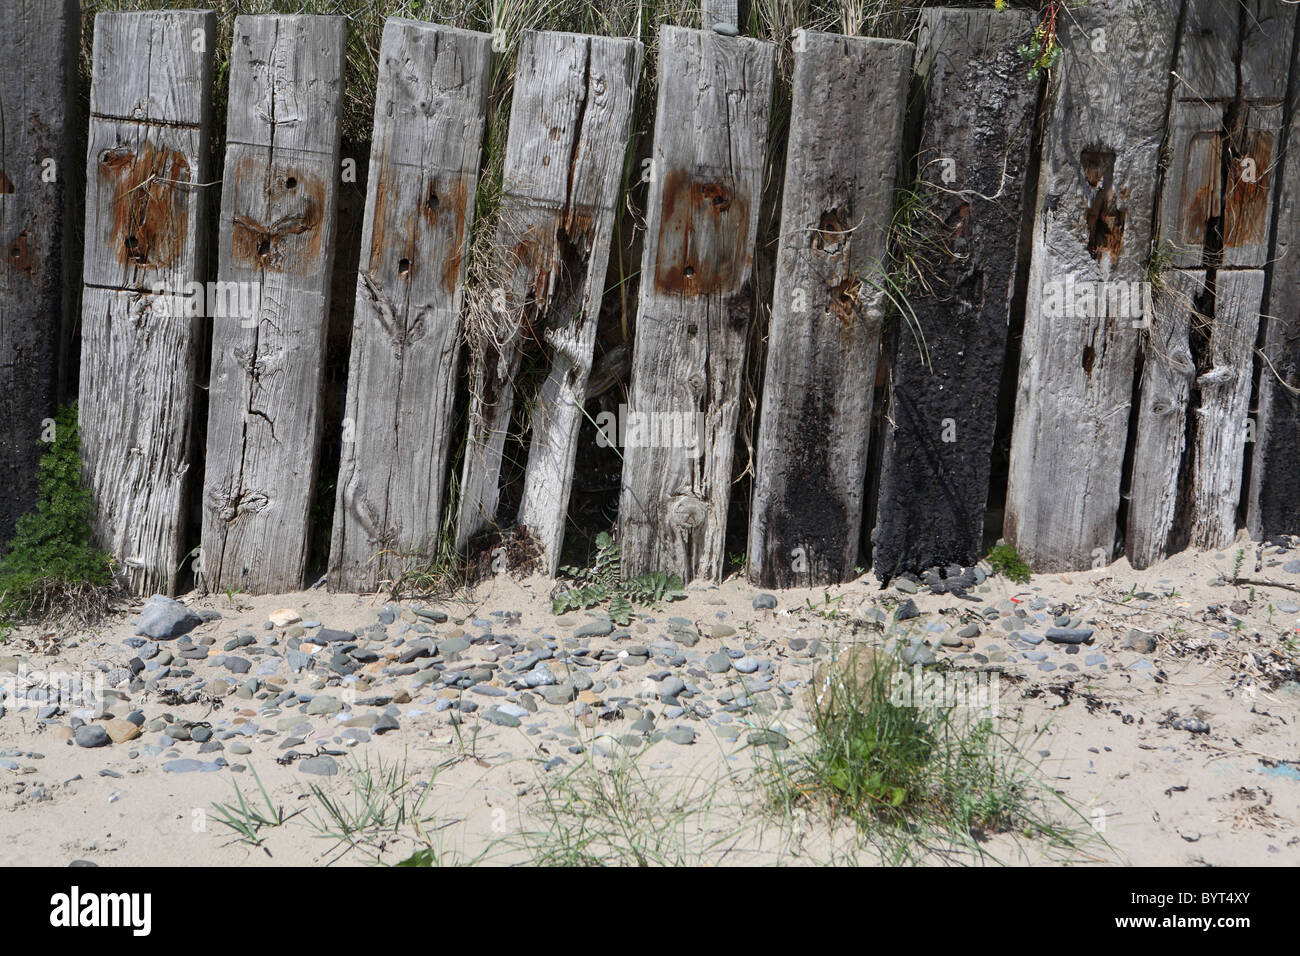 Old railway sleepers used as a fence - Stock Image